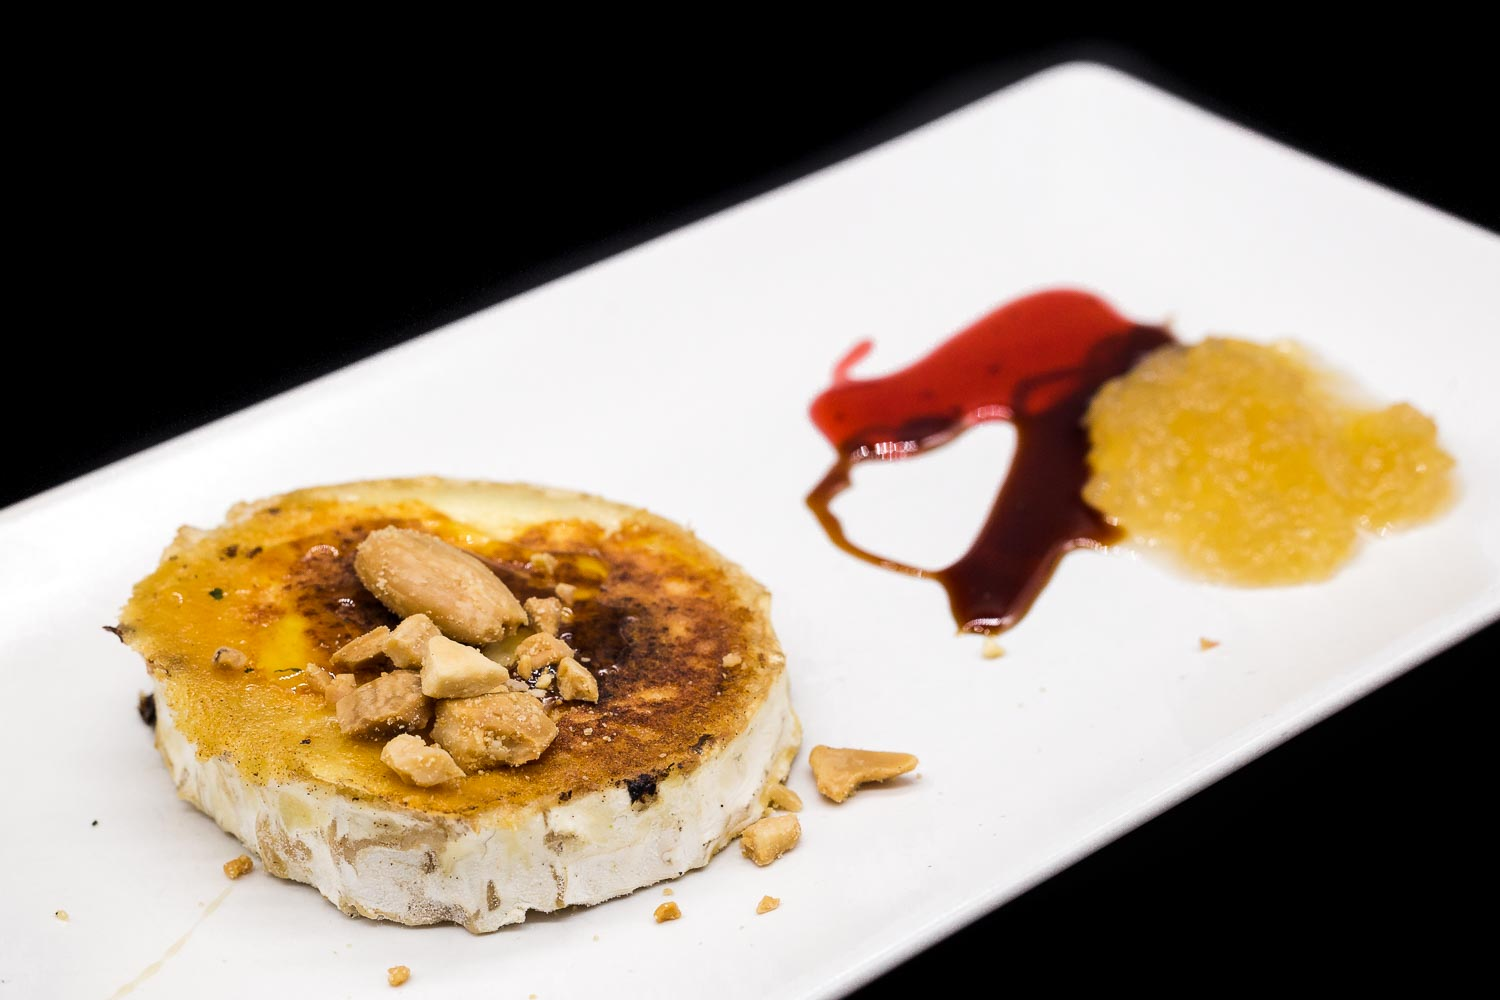 Goat cheese with almonds and honey